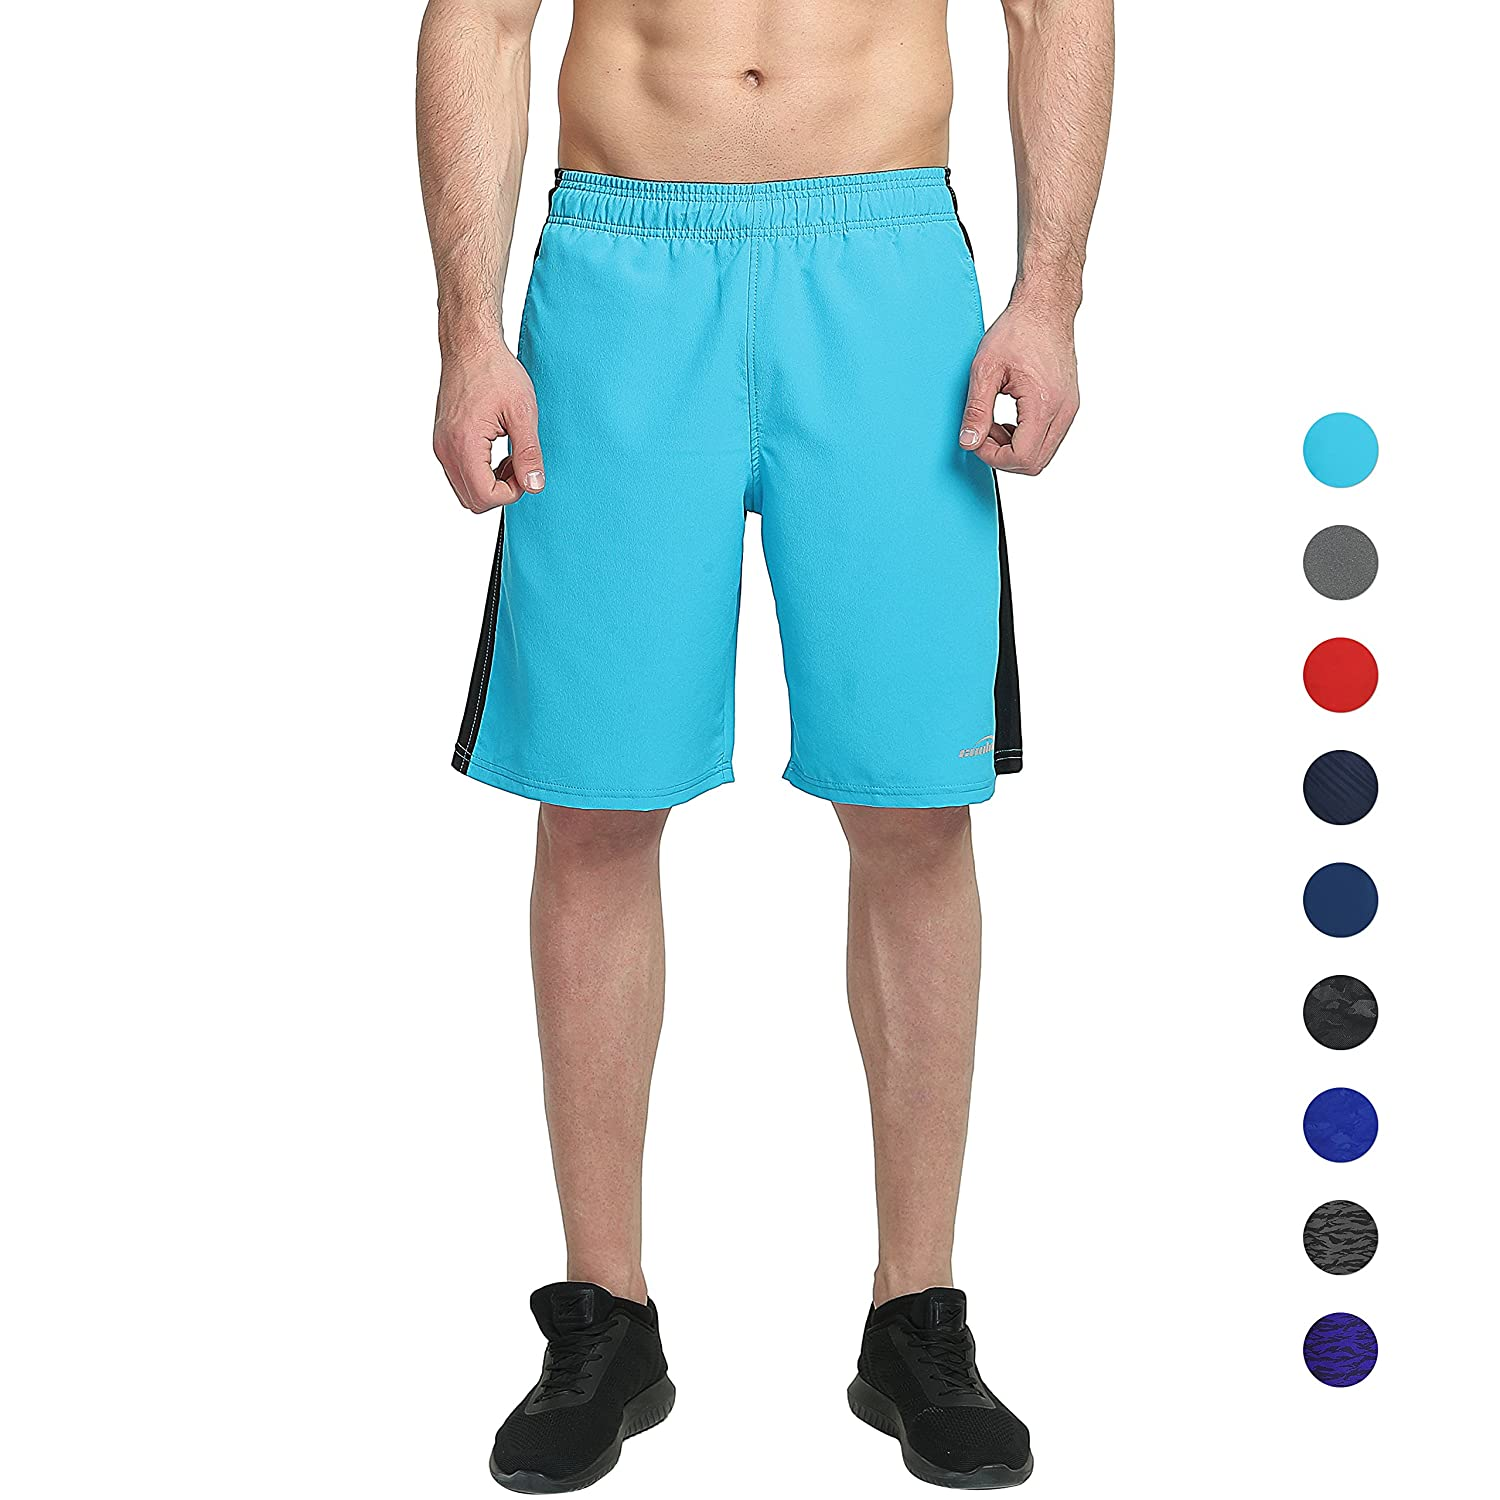 COOLOMG Men's Basketball Shorts with Pockets Quick Dry for Workout Running Training